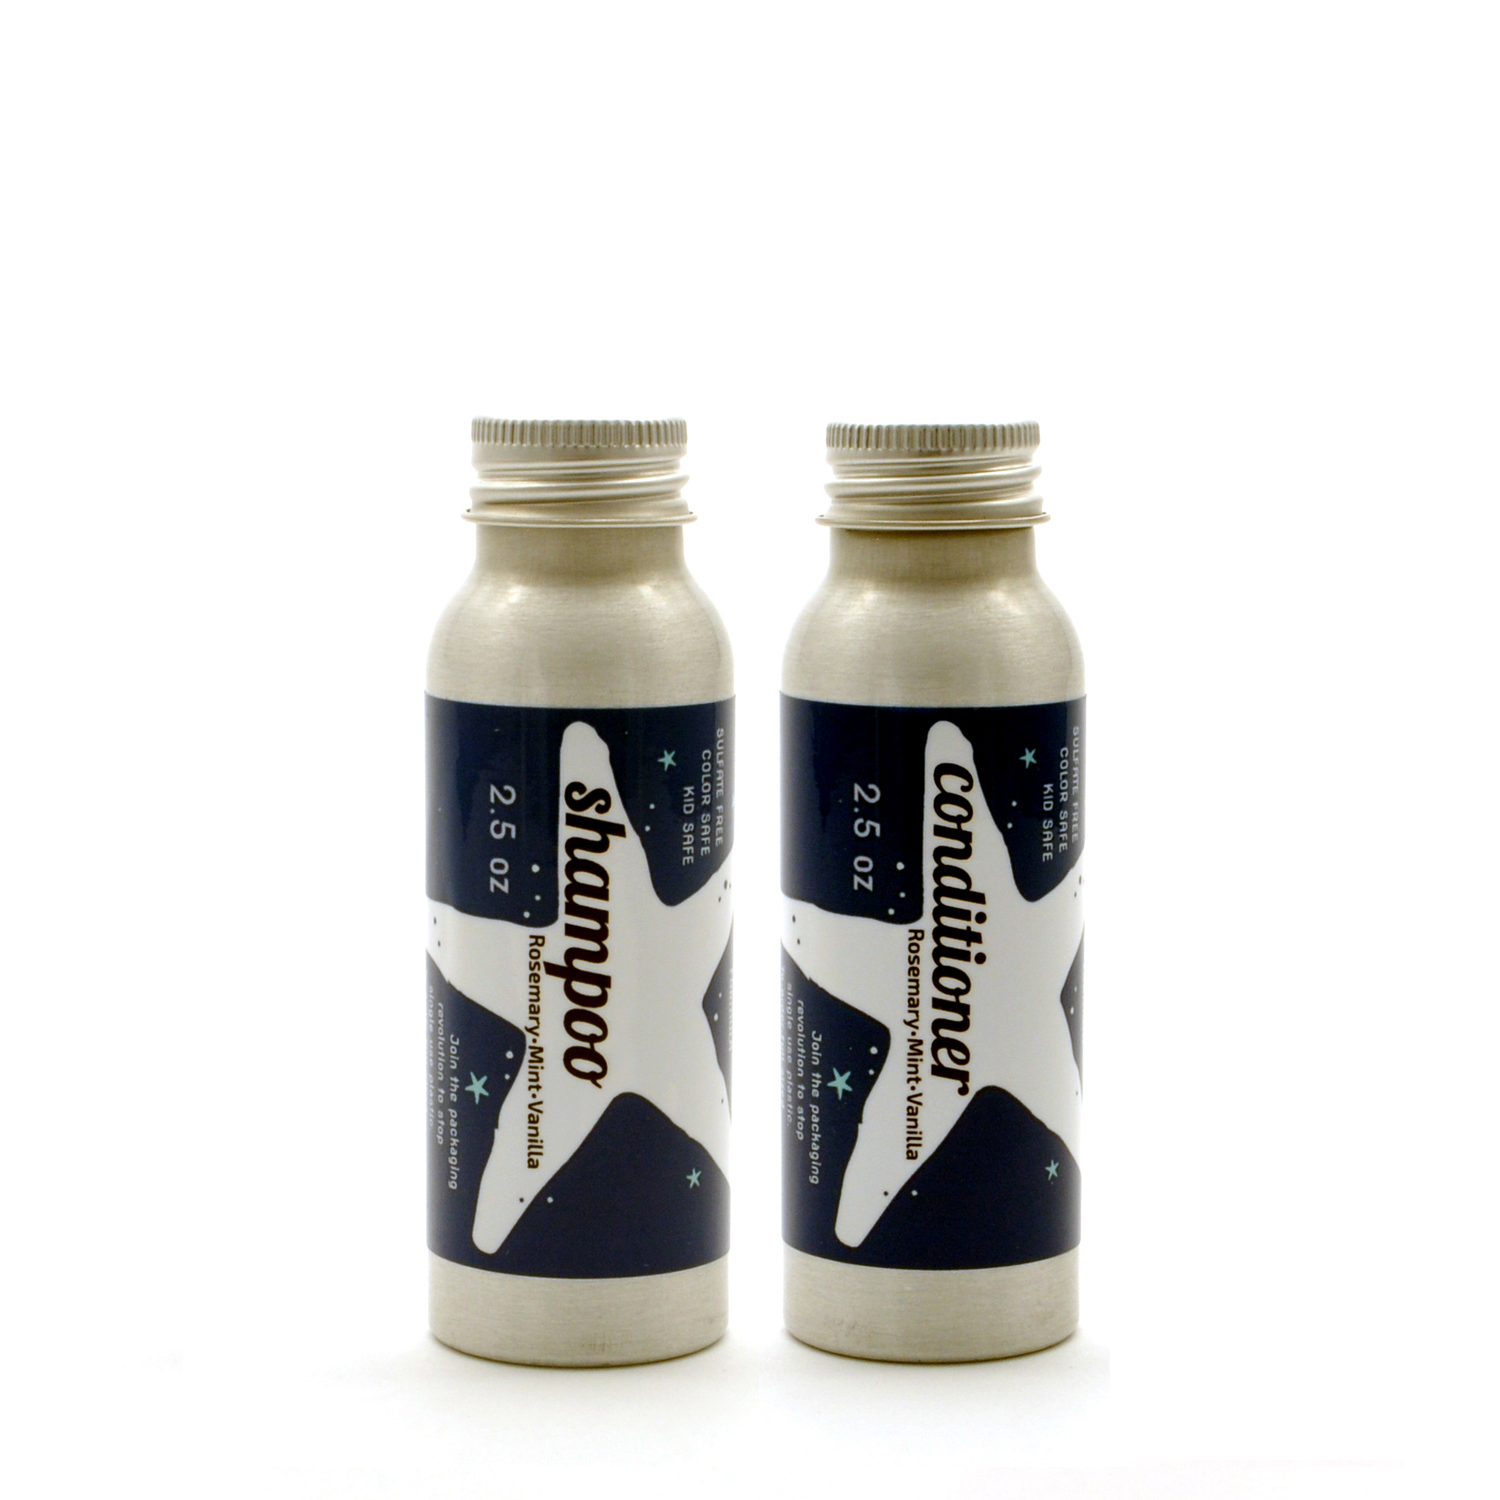 EarthHero - Plaine Products Refillable Travel Size Vegan Shampoo + Conditioner Set - Rosemary